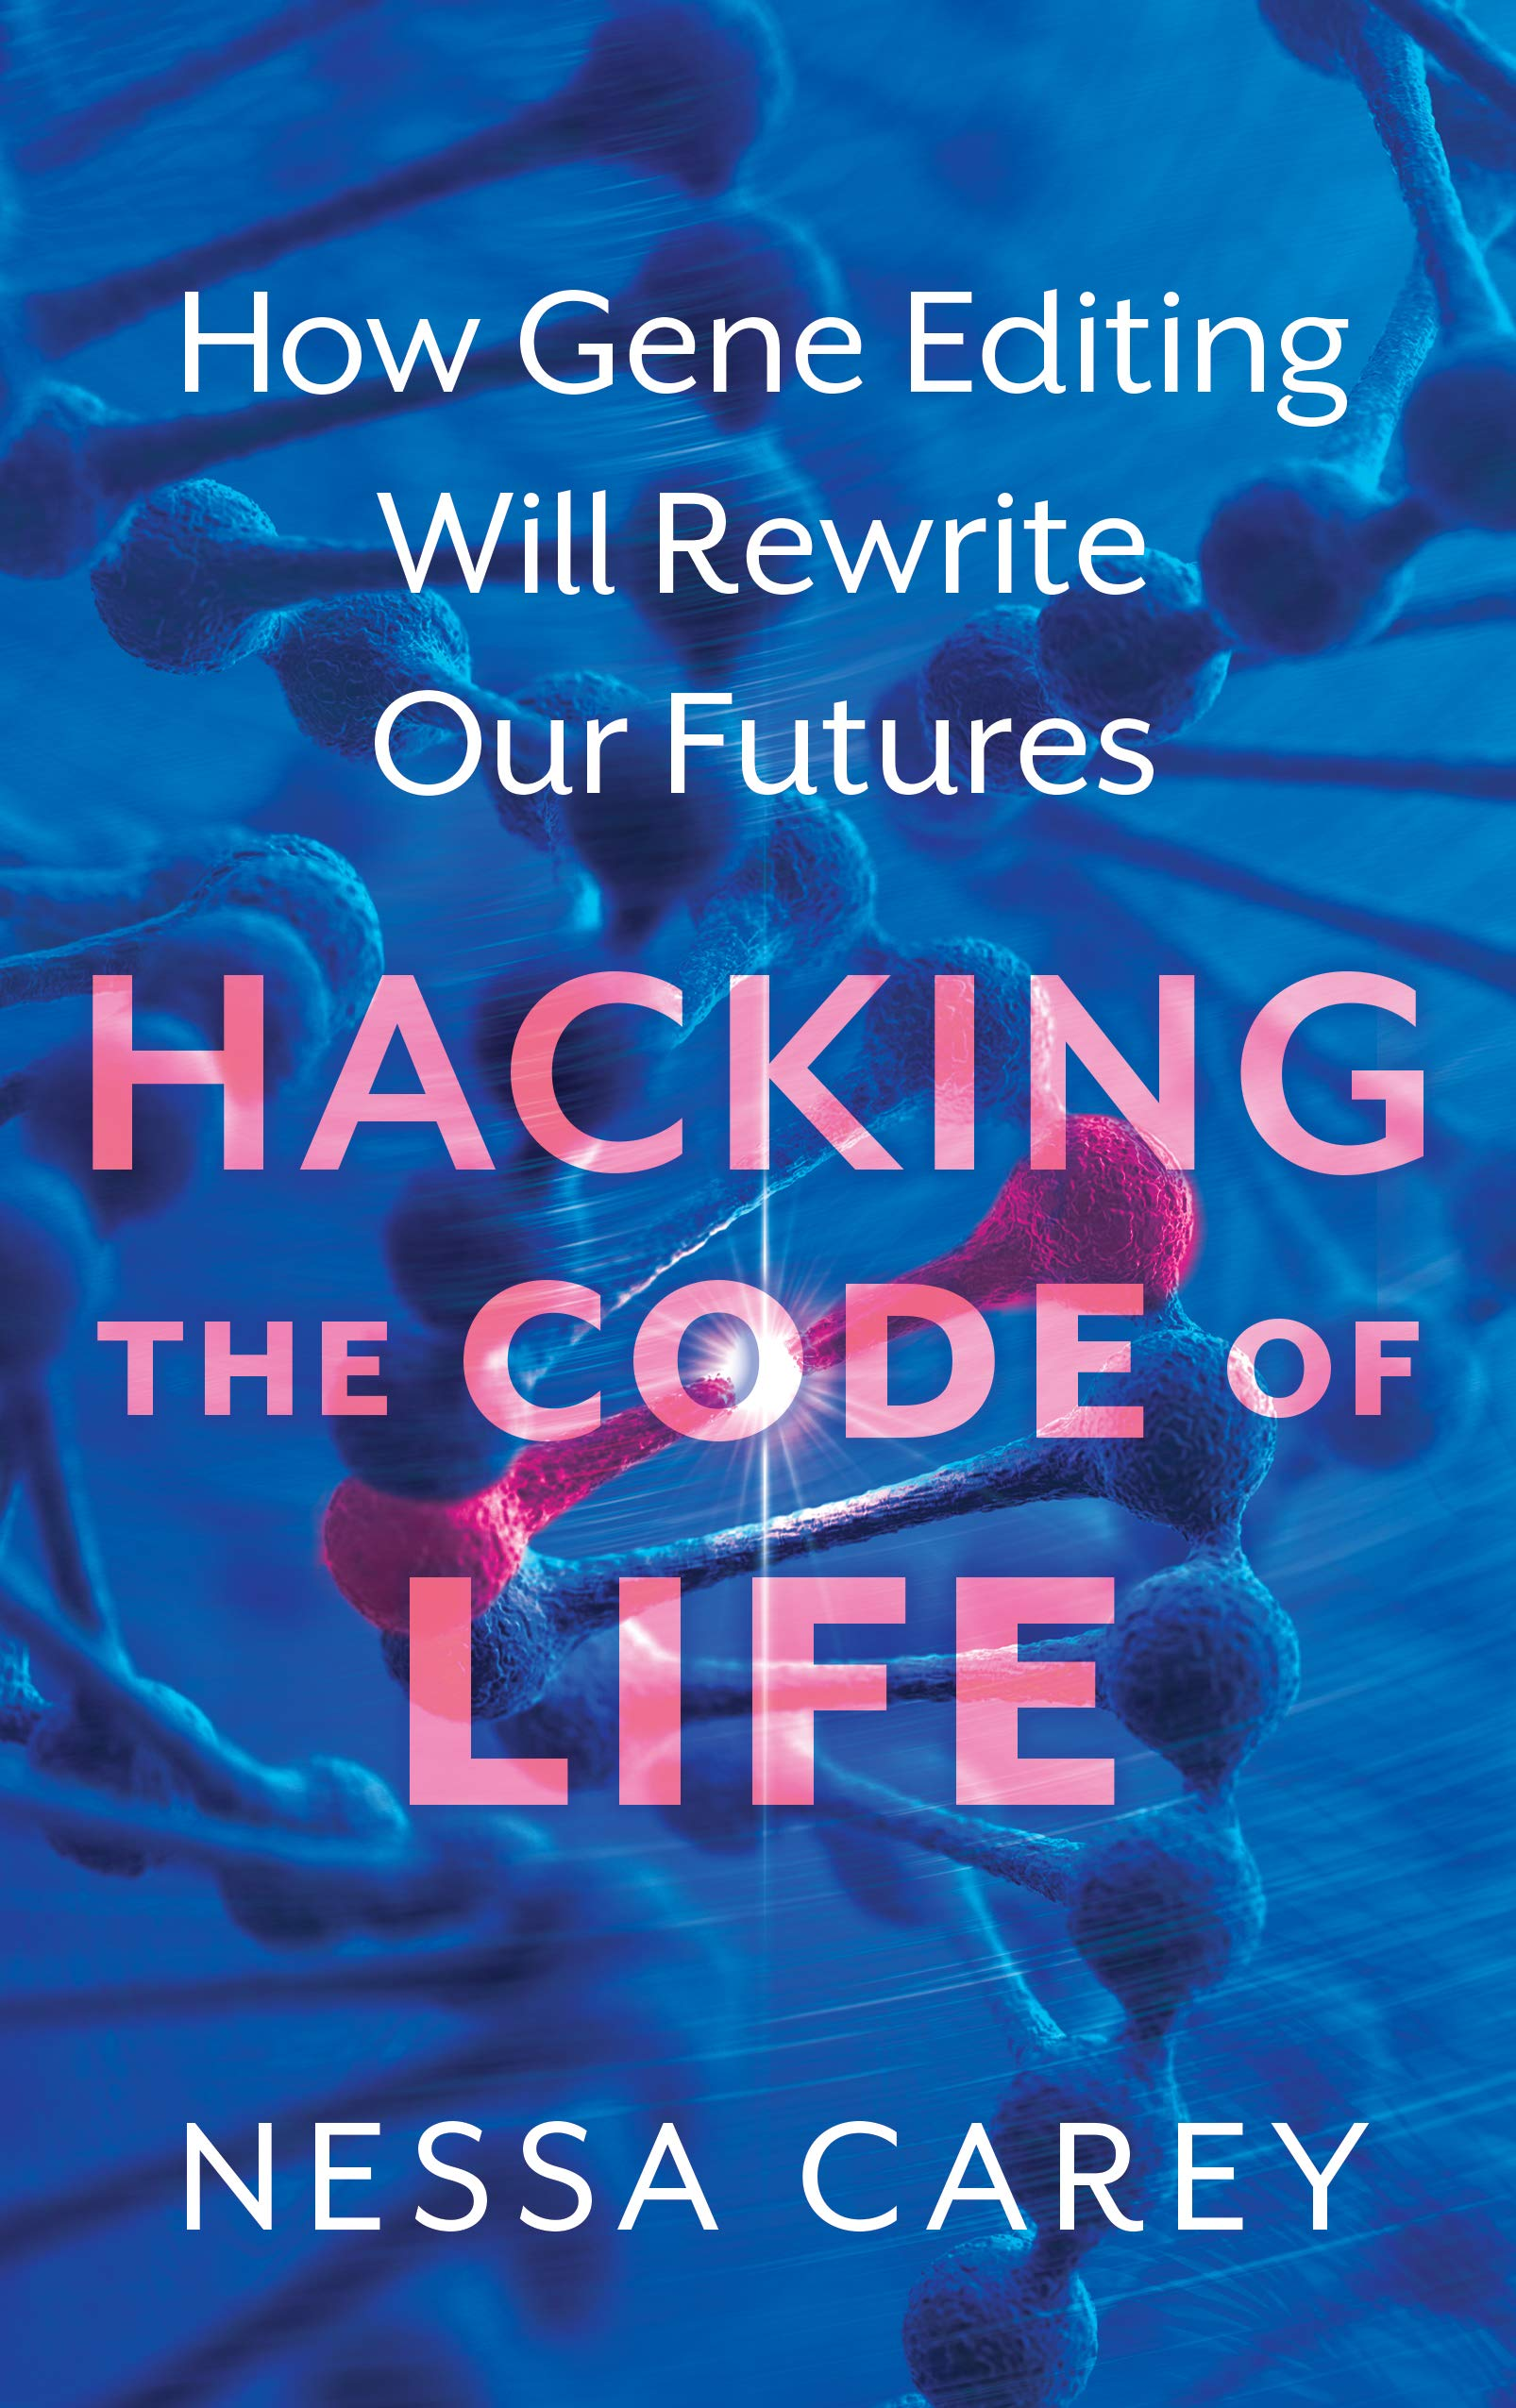 Gene Editing: Rewriting the code of life Paperback – June 11, 2019 Nessa Carey Icon Books 1785784978 General Adult